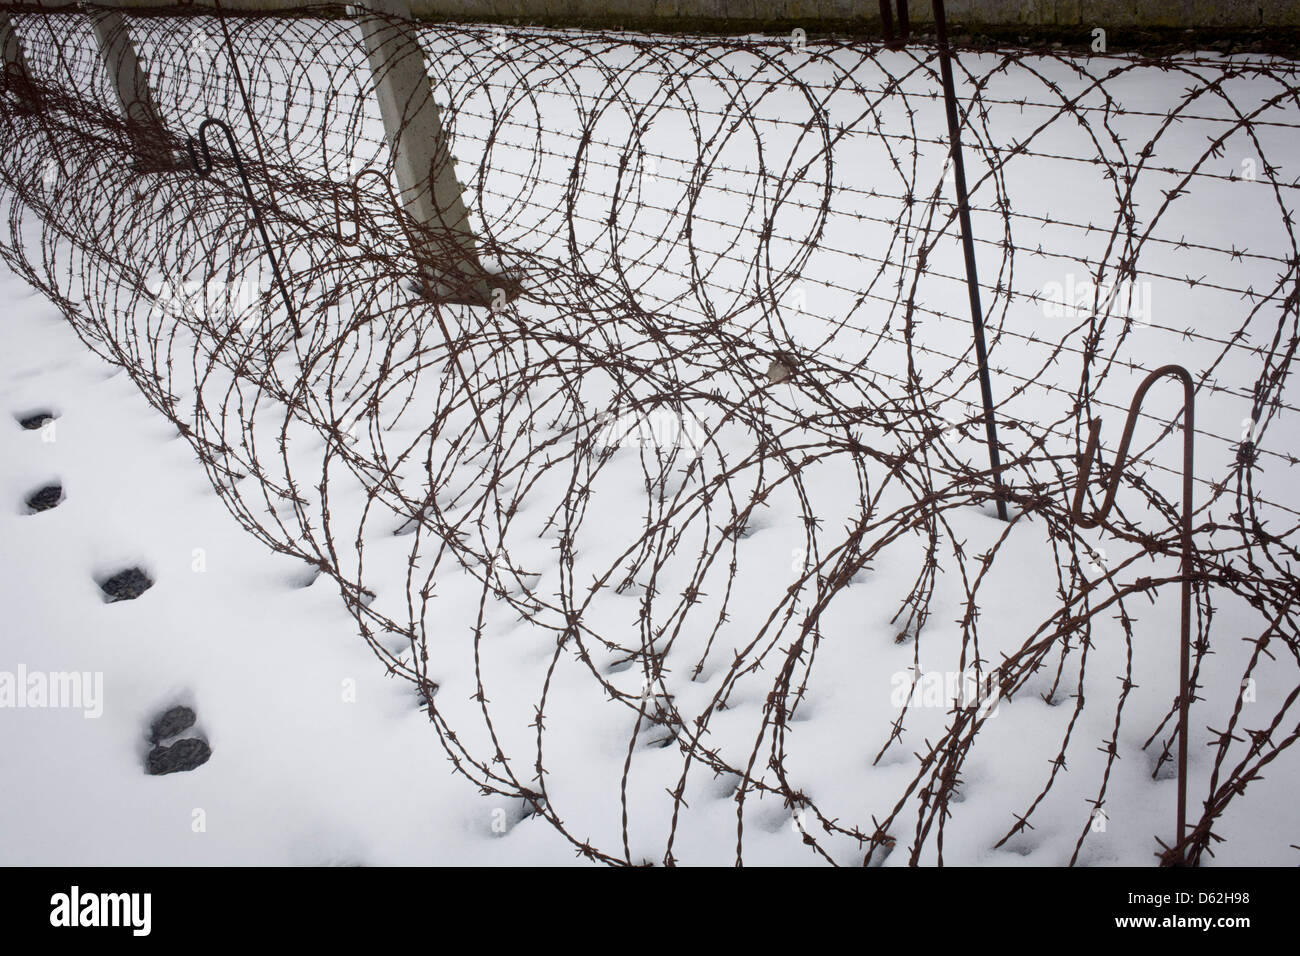 Coils of rusting barbed wire in winter snow form a perimeter fence ...